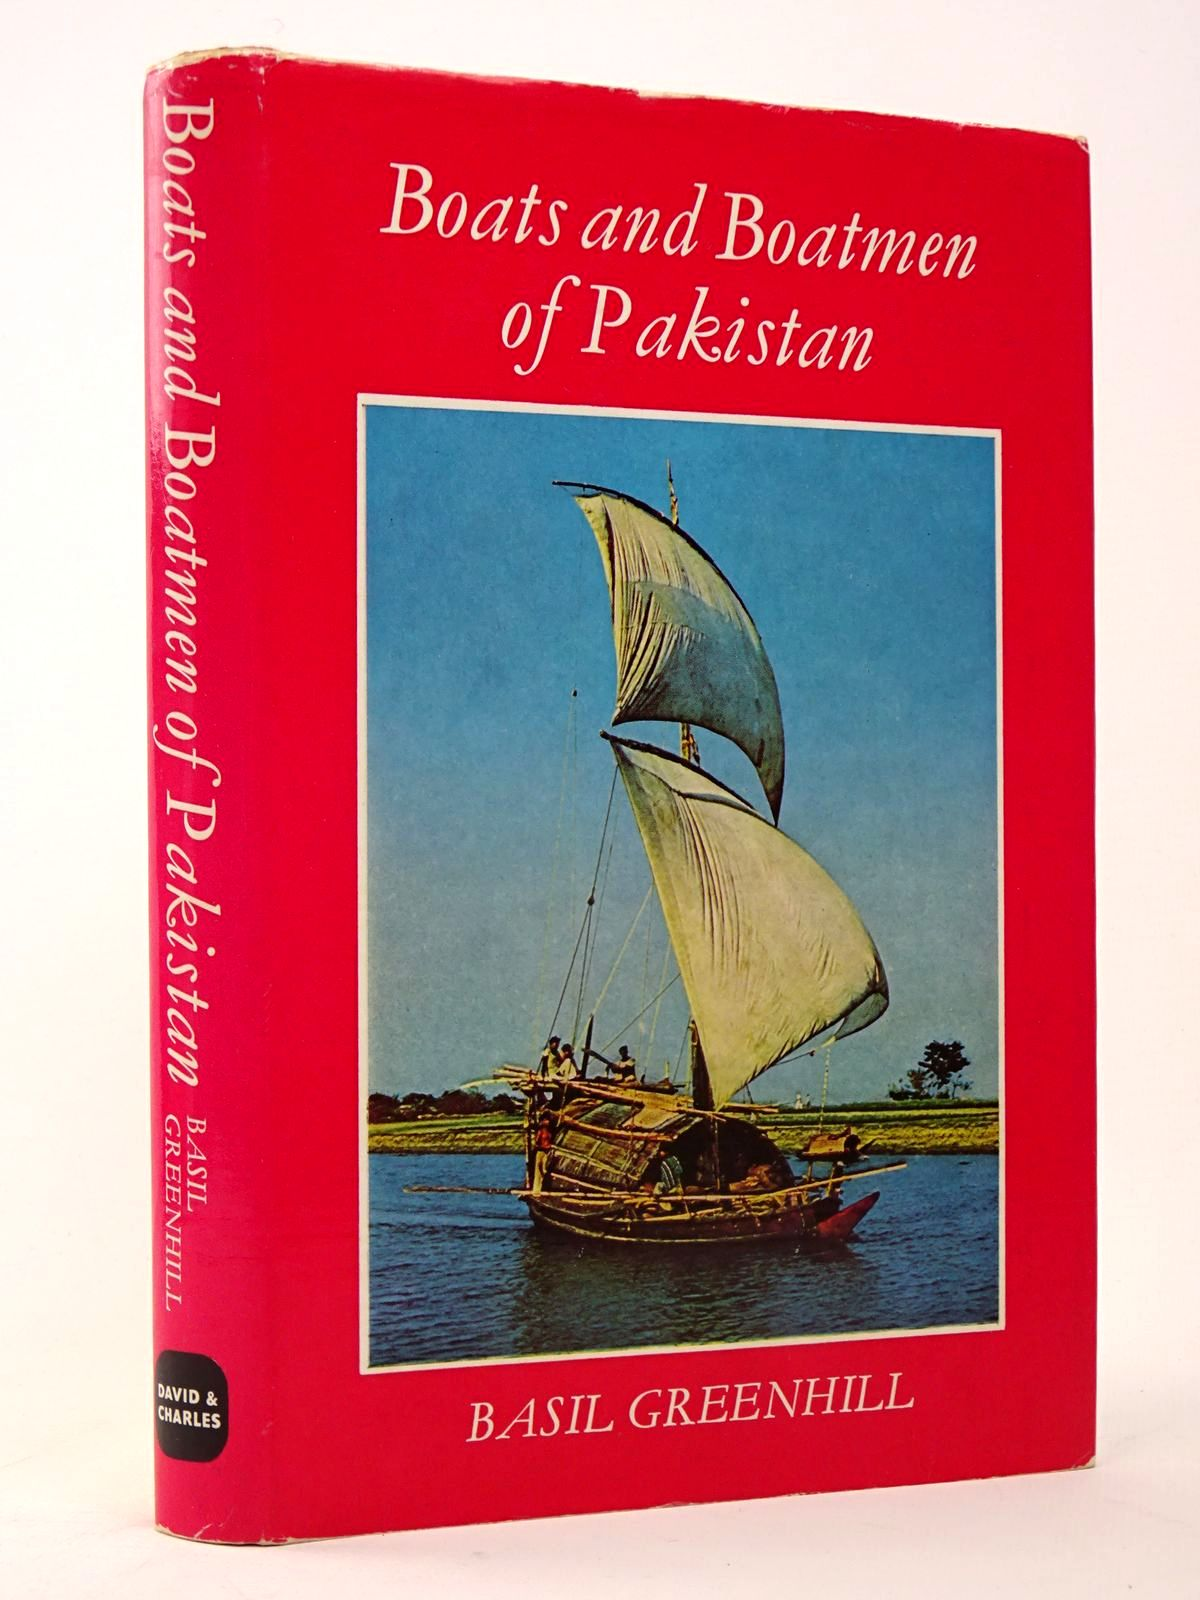 Photo of BOATS AND BOATMEN OF PAKISTAN written by Greenhill, Basil published by David & Charles (STOCK CODE: 1817537)  for sale by Stella & Rose's Books